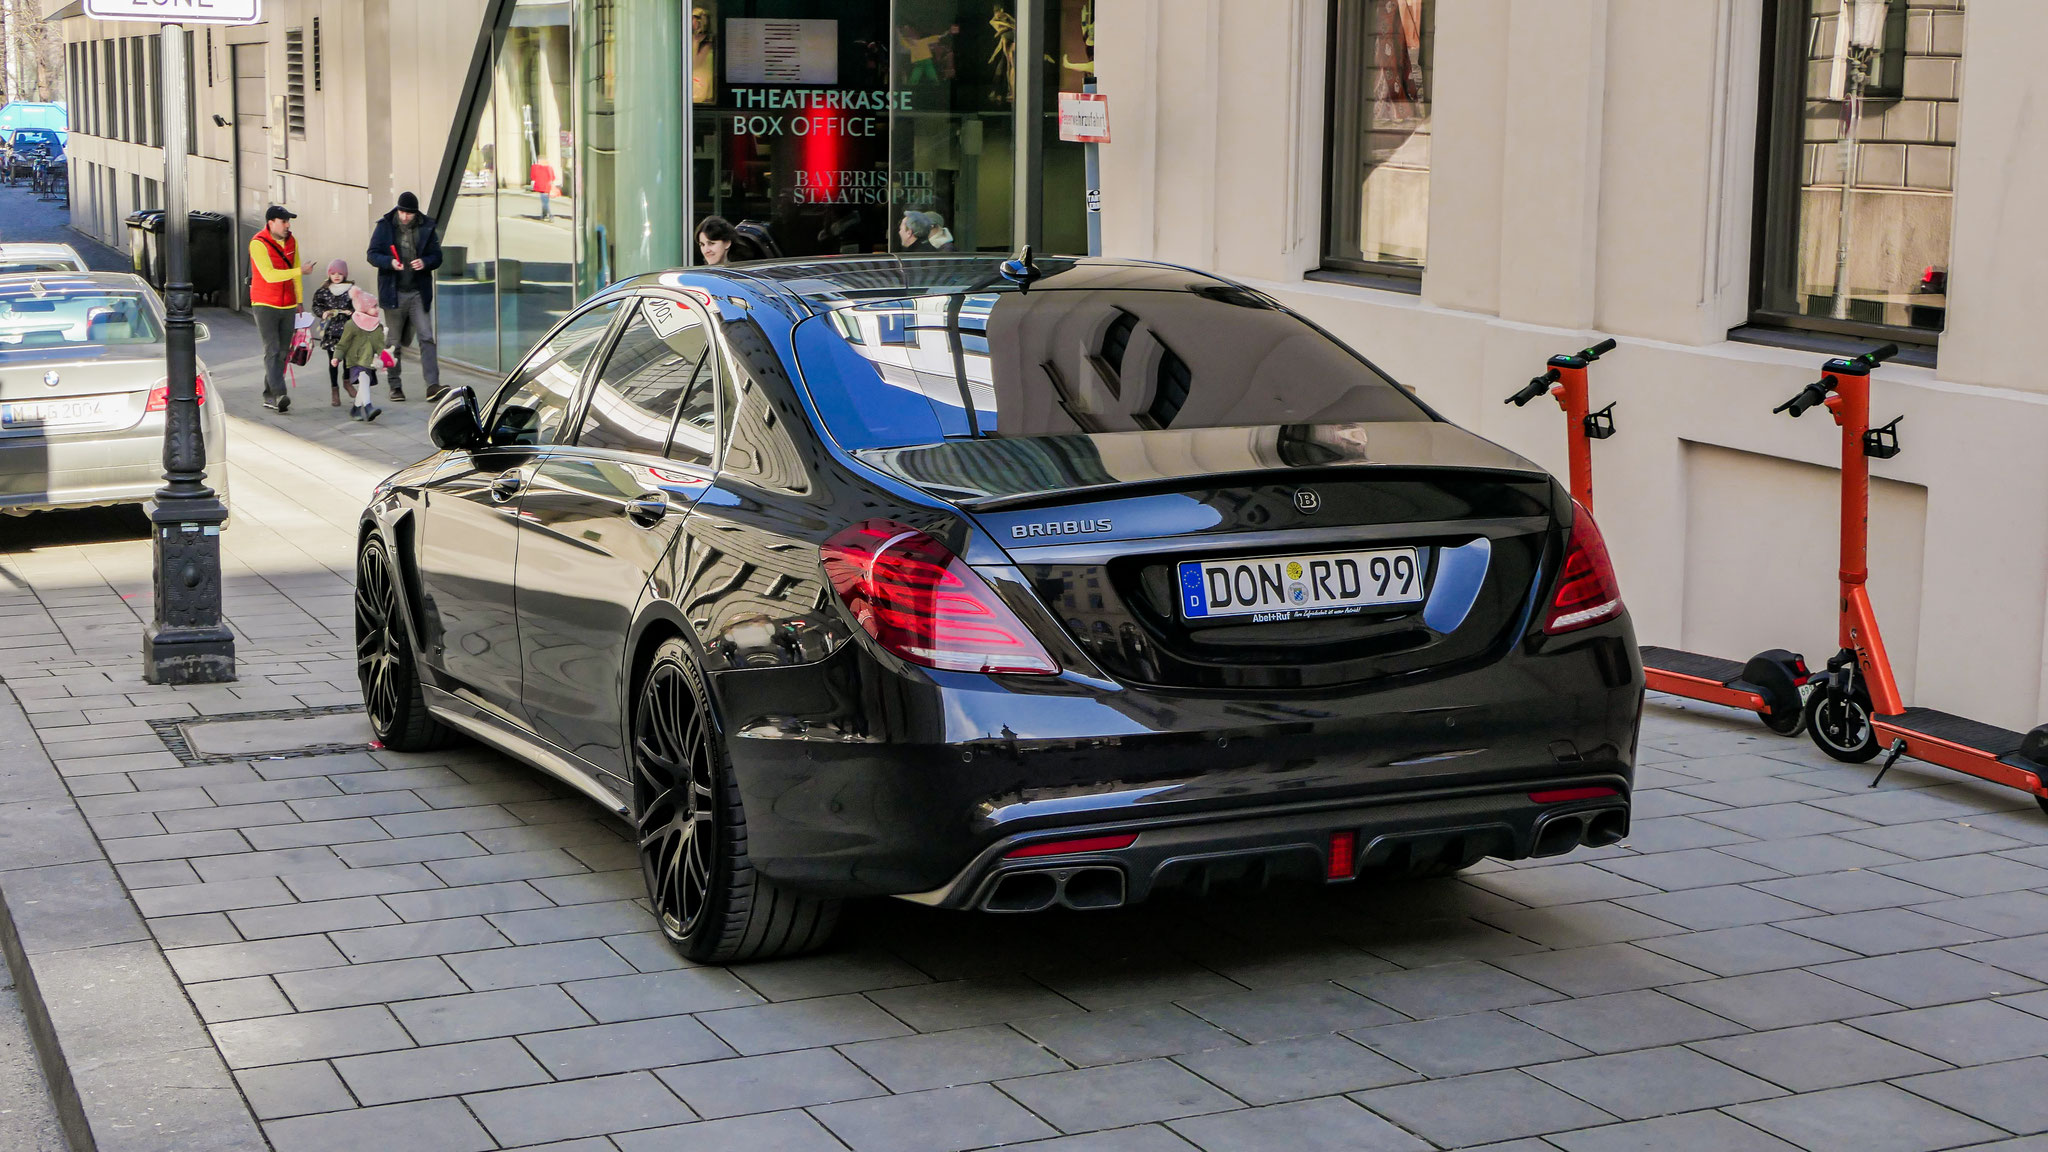 Brabus S63 - DON-RD-99